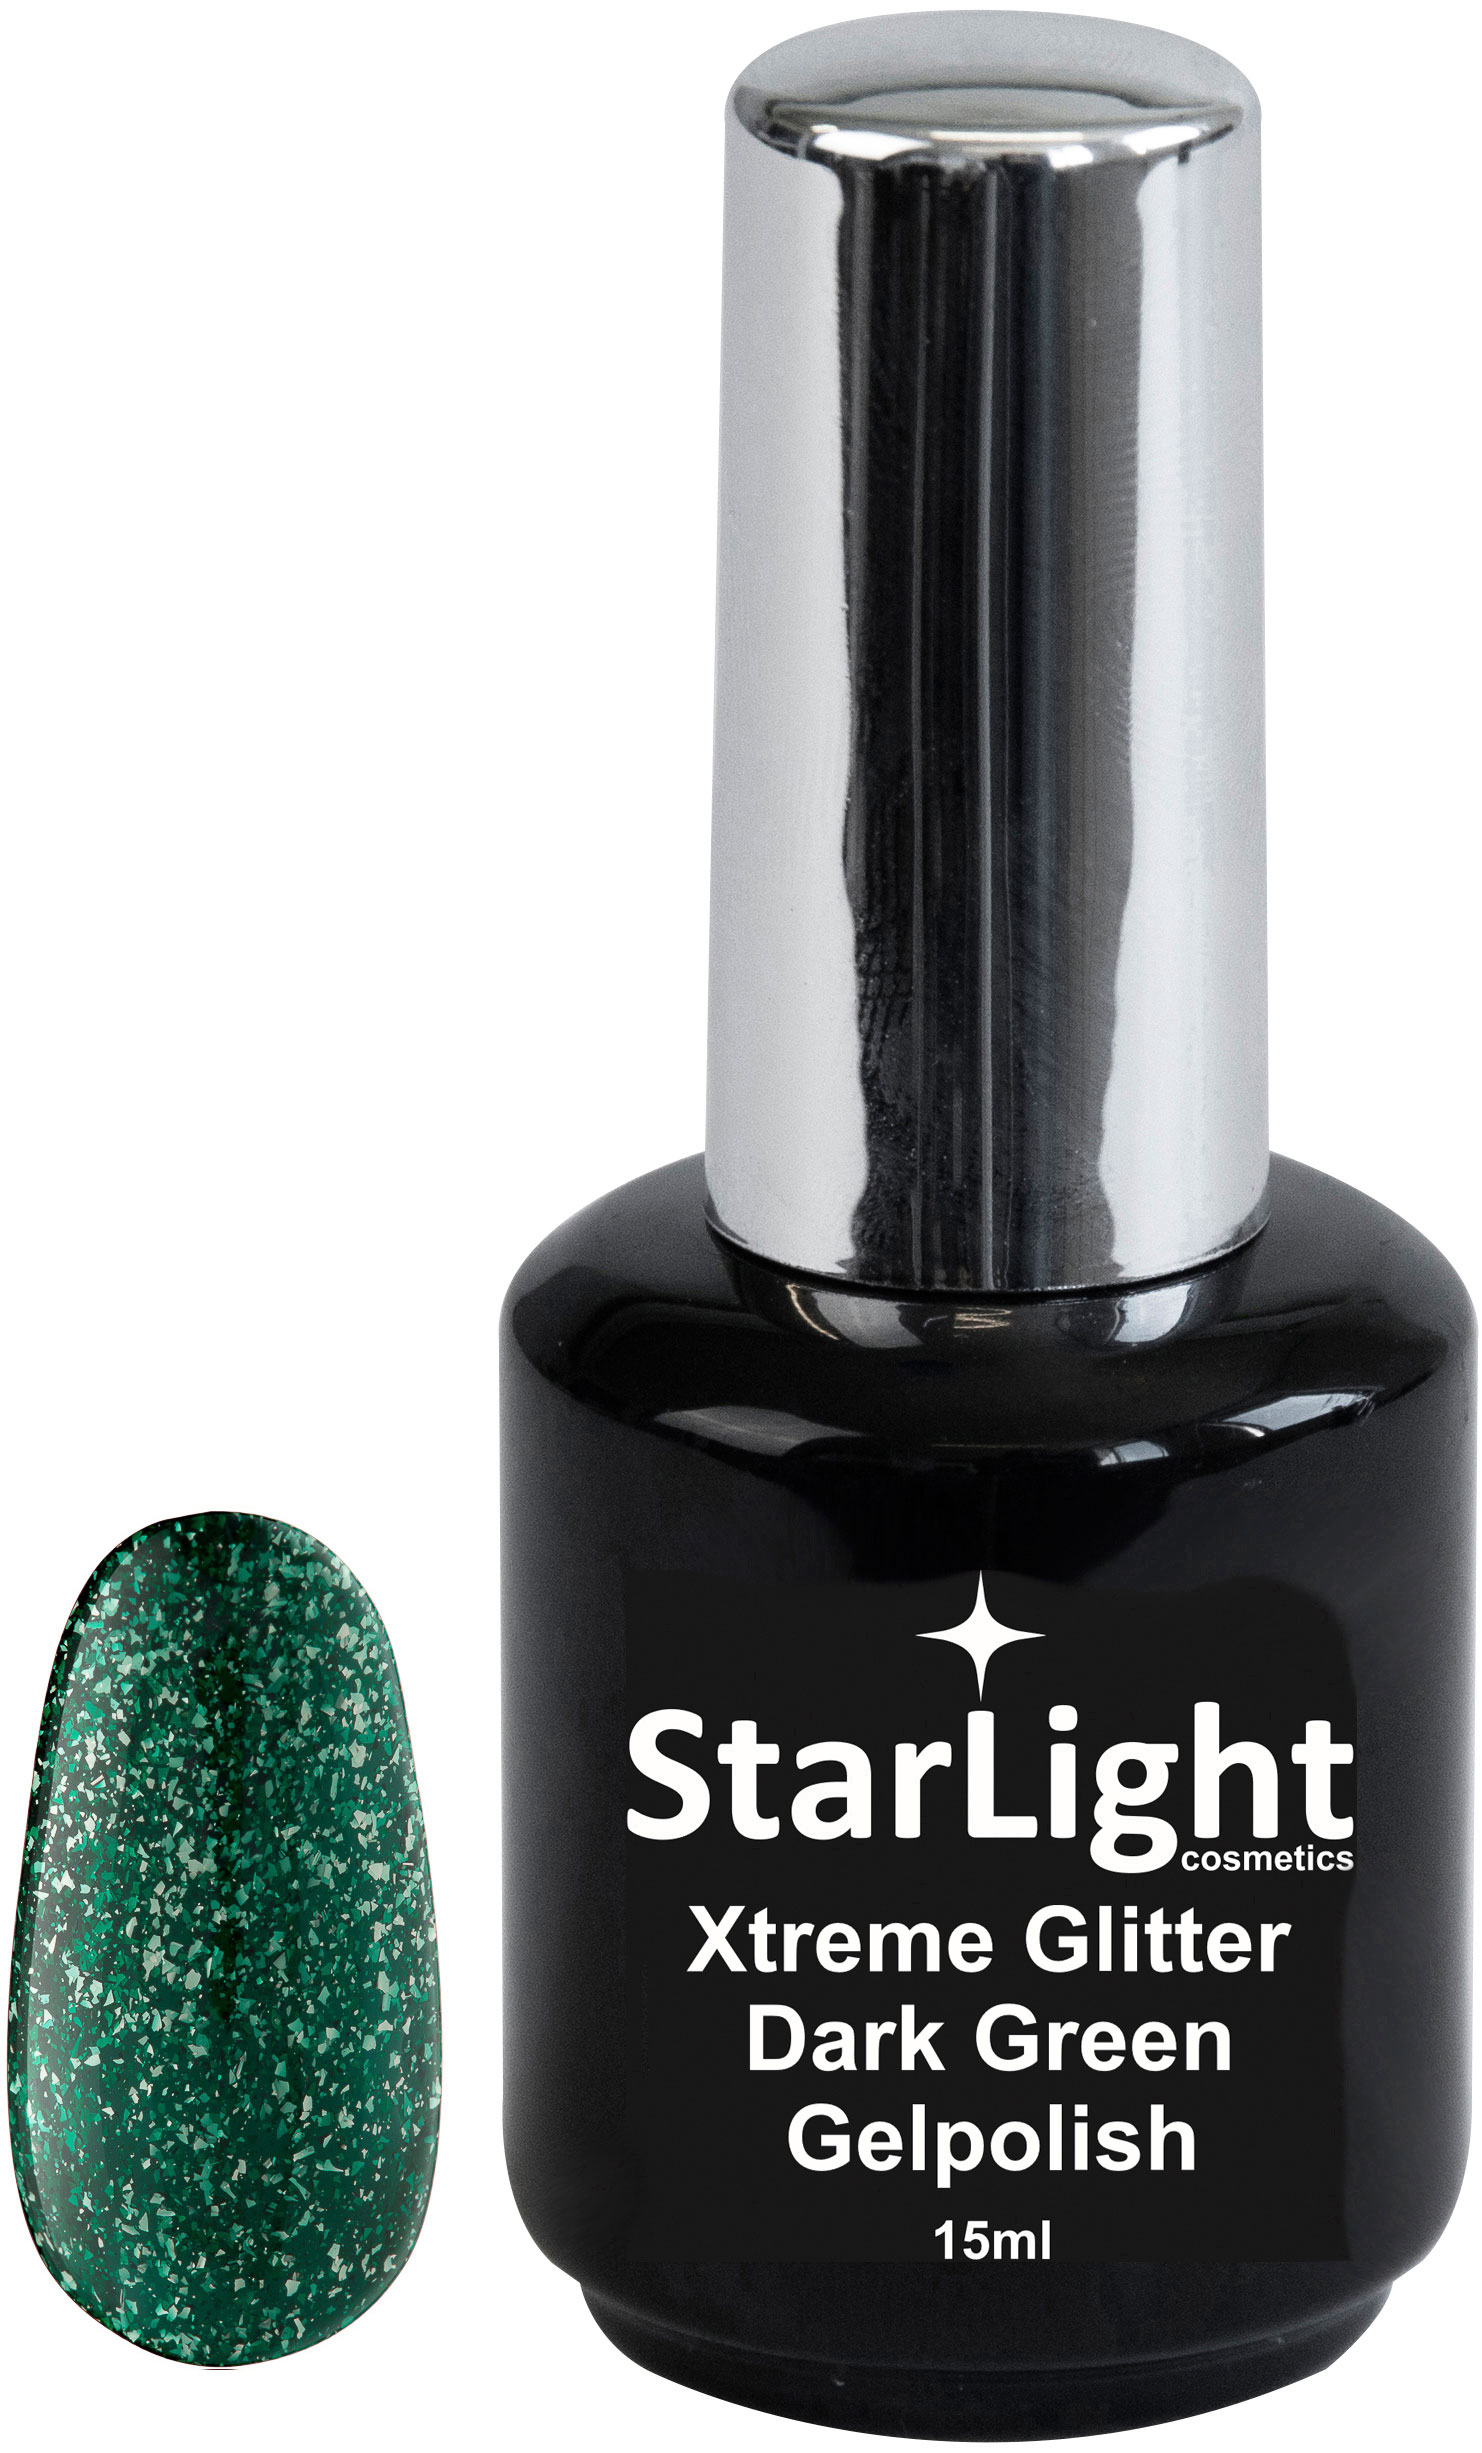 Naglar Gelpolish Xtreme Glitter Dark Green - 15 ml